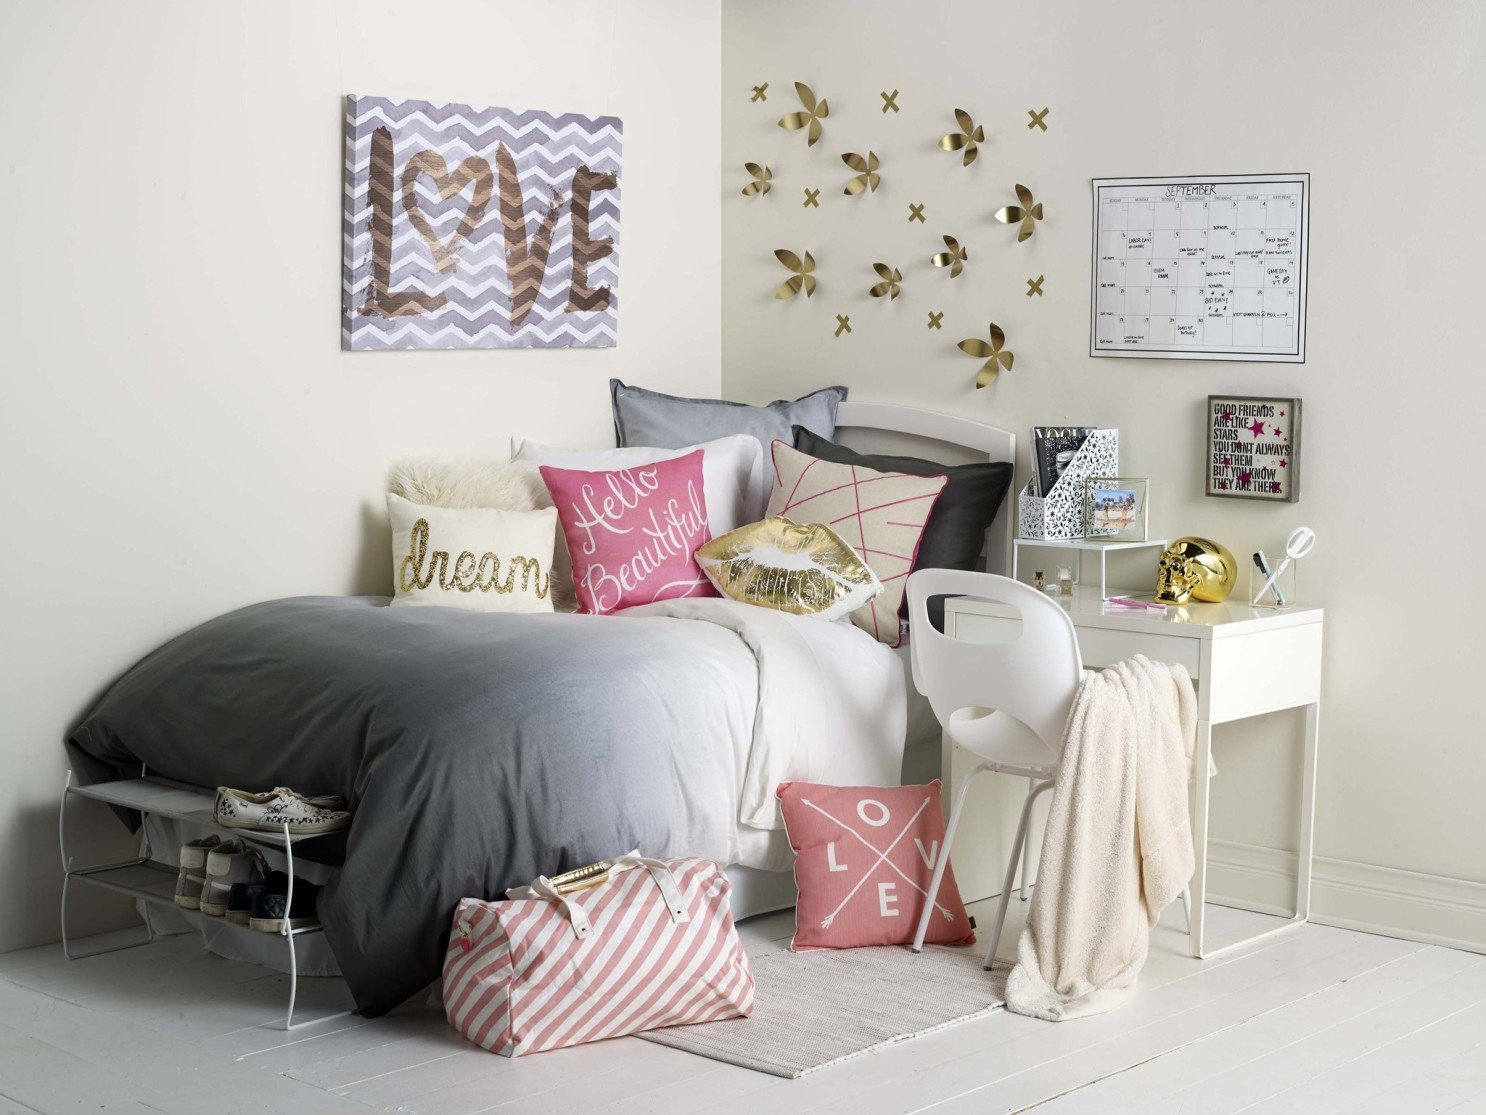 How to Decorate A Large Bedroom Luxury Dorm Room Design Goes A Few Degrees Beyond the Milk Crate